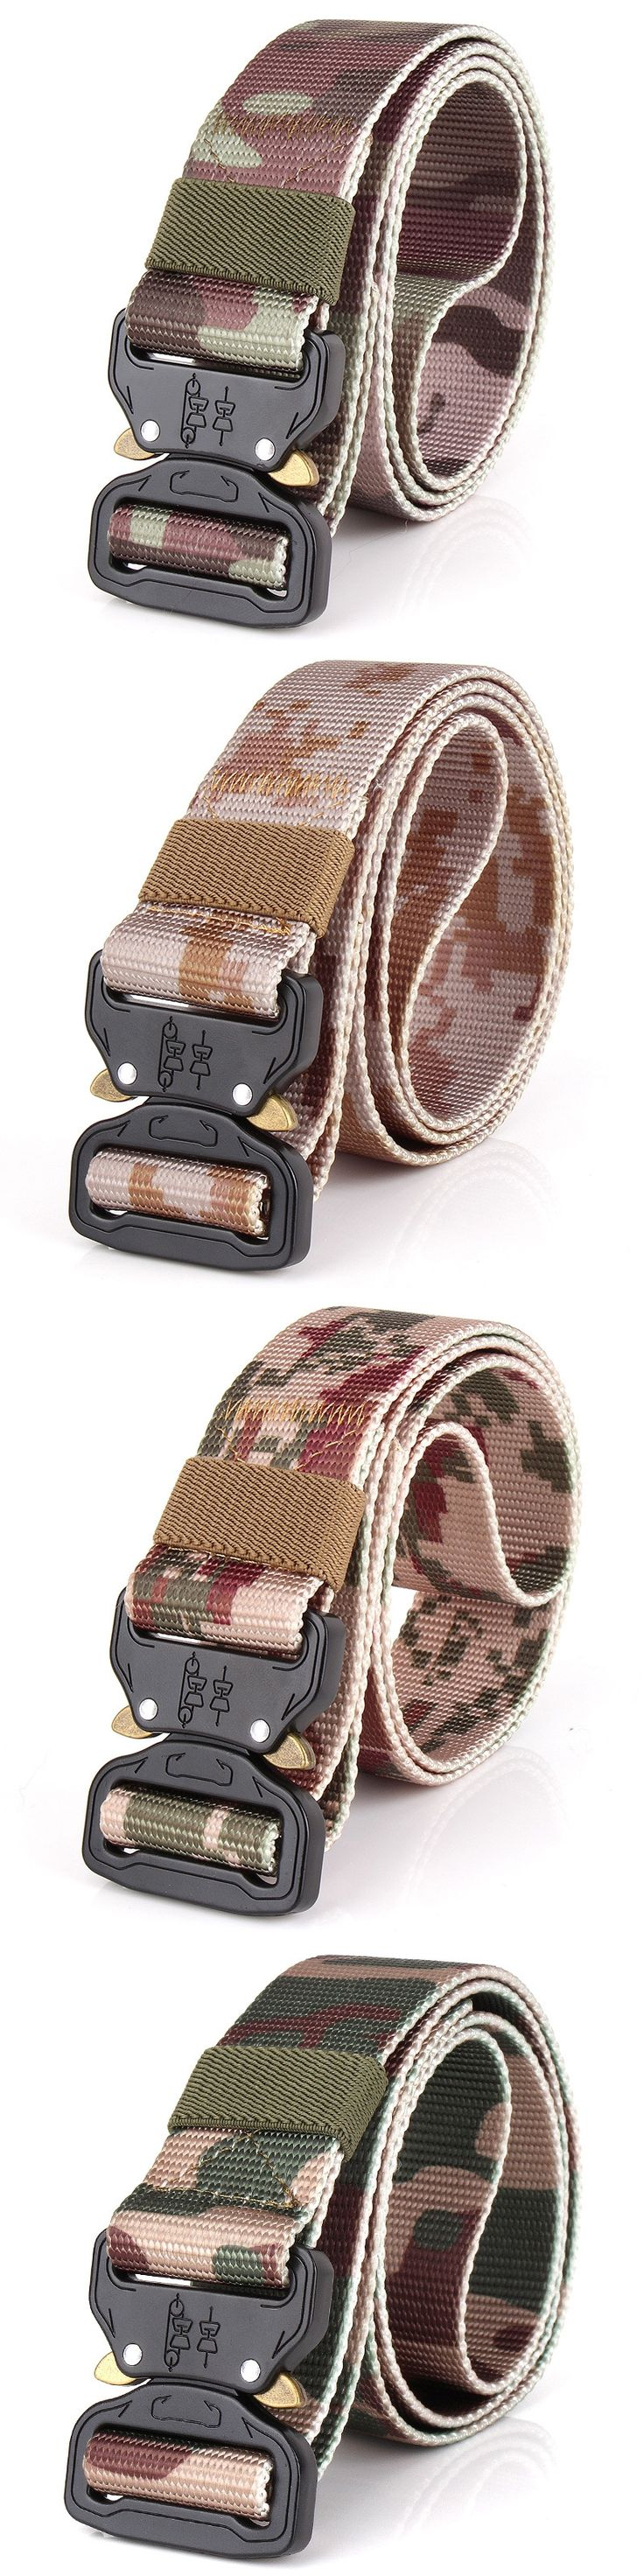 Tactical Belts Military Nylon Belt Mens Special Forces SWAT Army Gear Combat Camouflage Waistband Emergency Survival Waist Belt